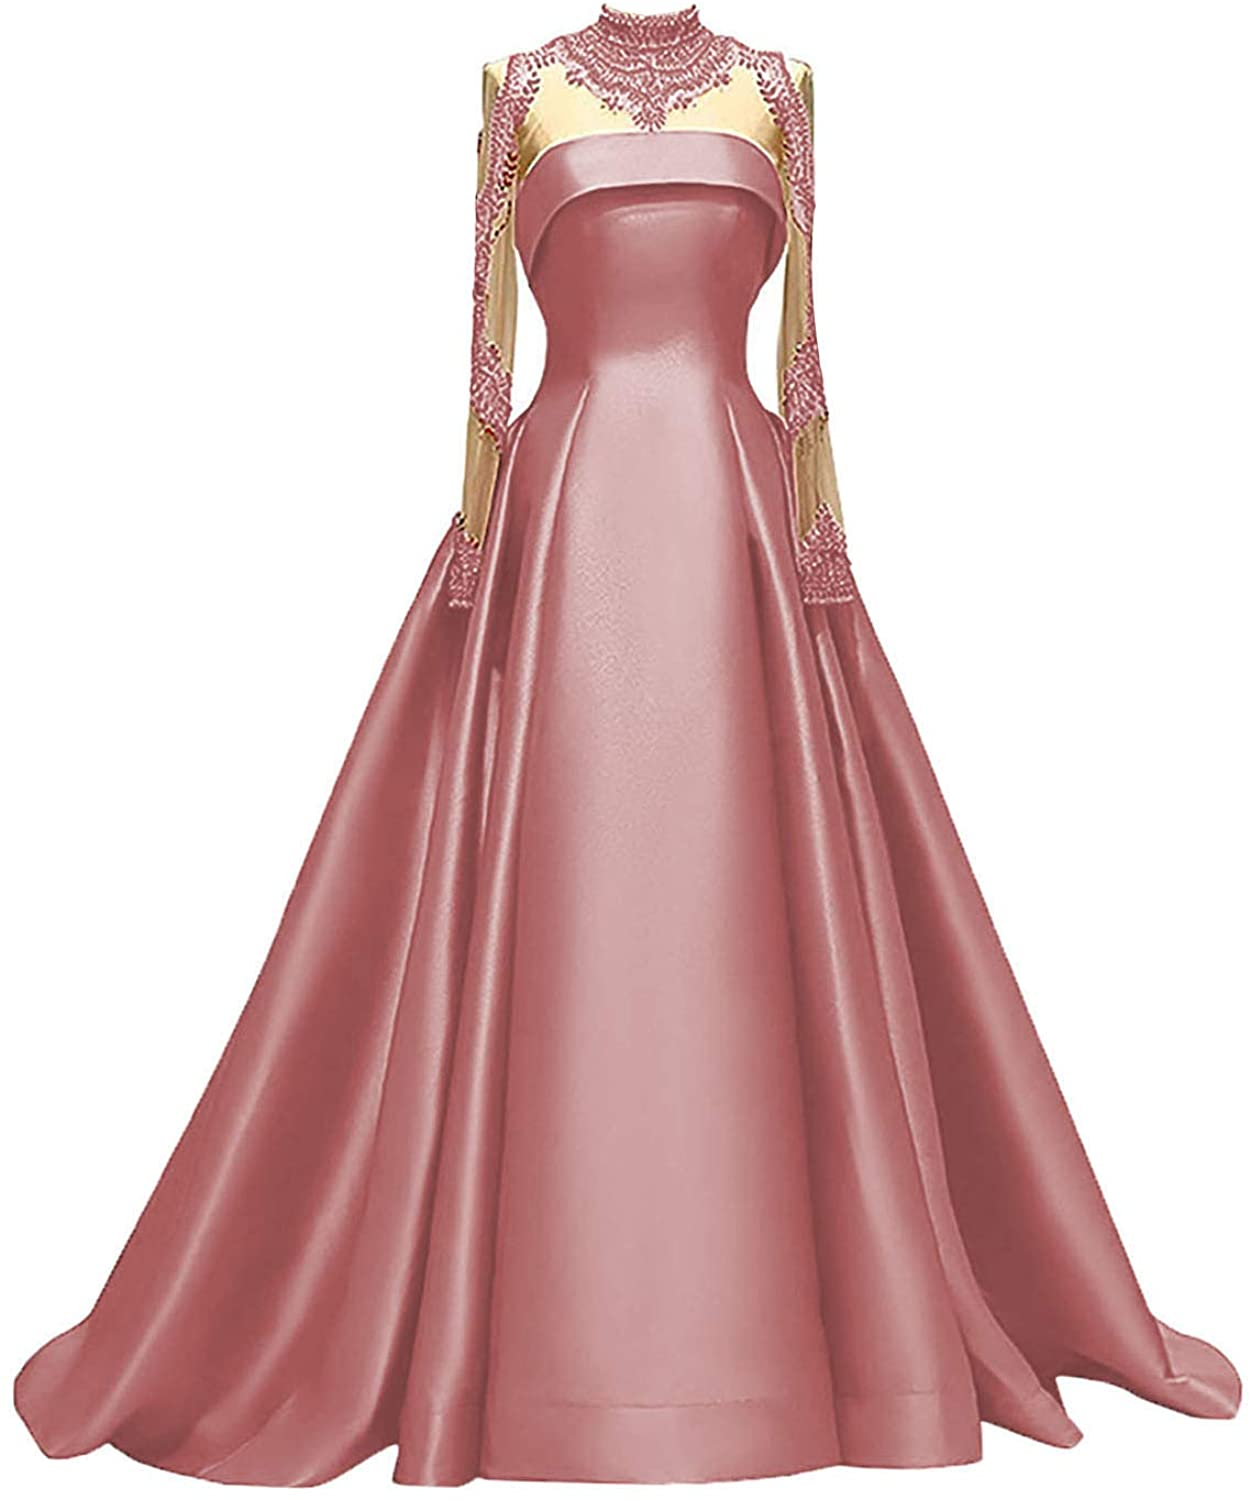 M Bridal Women's A-Line High Neck Long Sleeve Satin Prom Gown